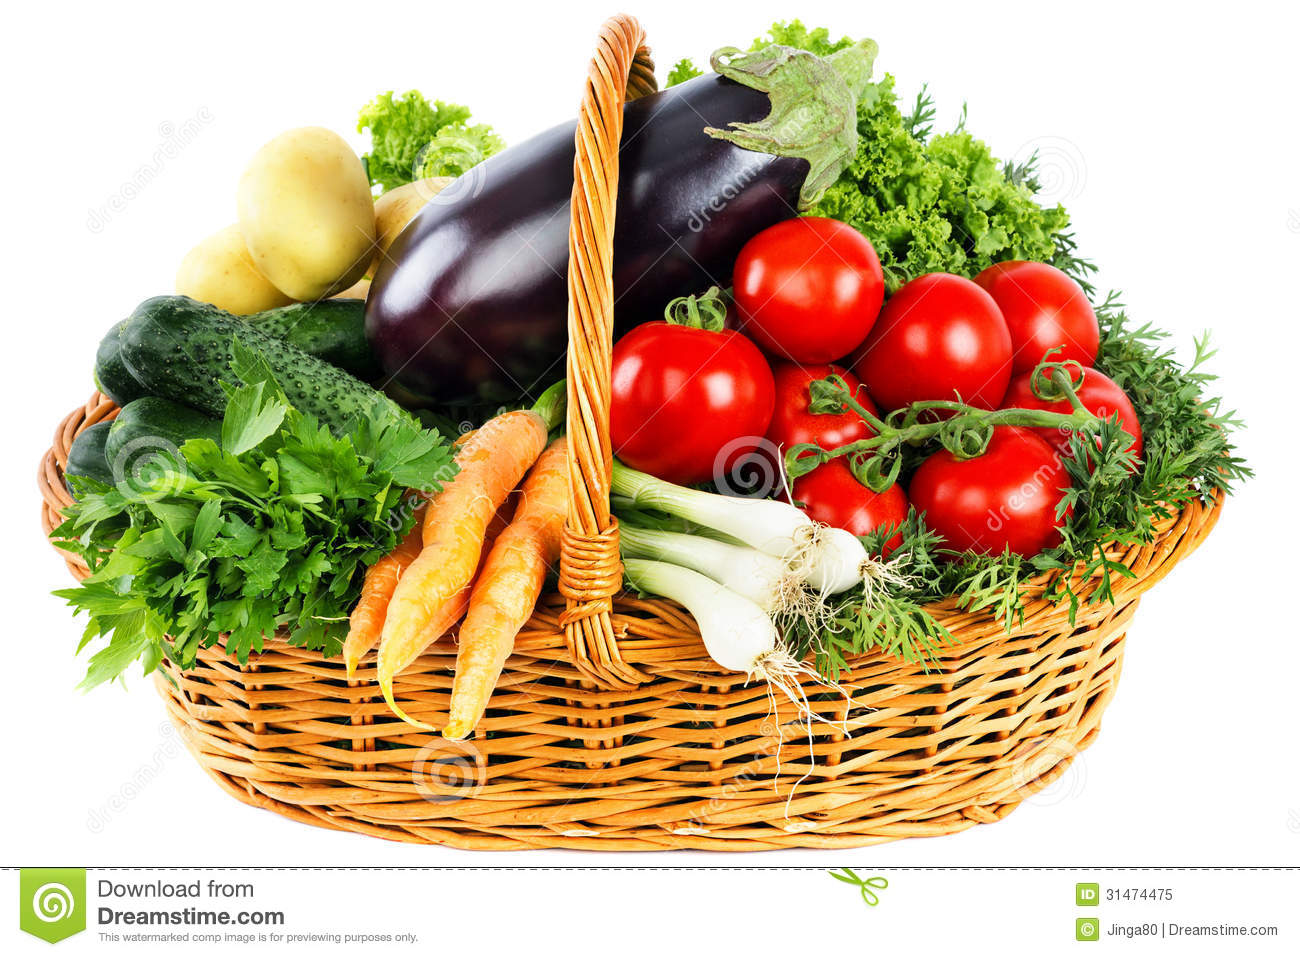 Fresh Vegetables In Basket Royalty Free Stock Photo - Image: 31474475